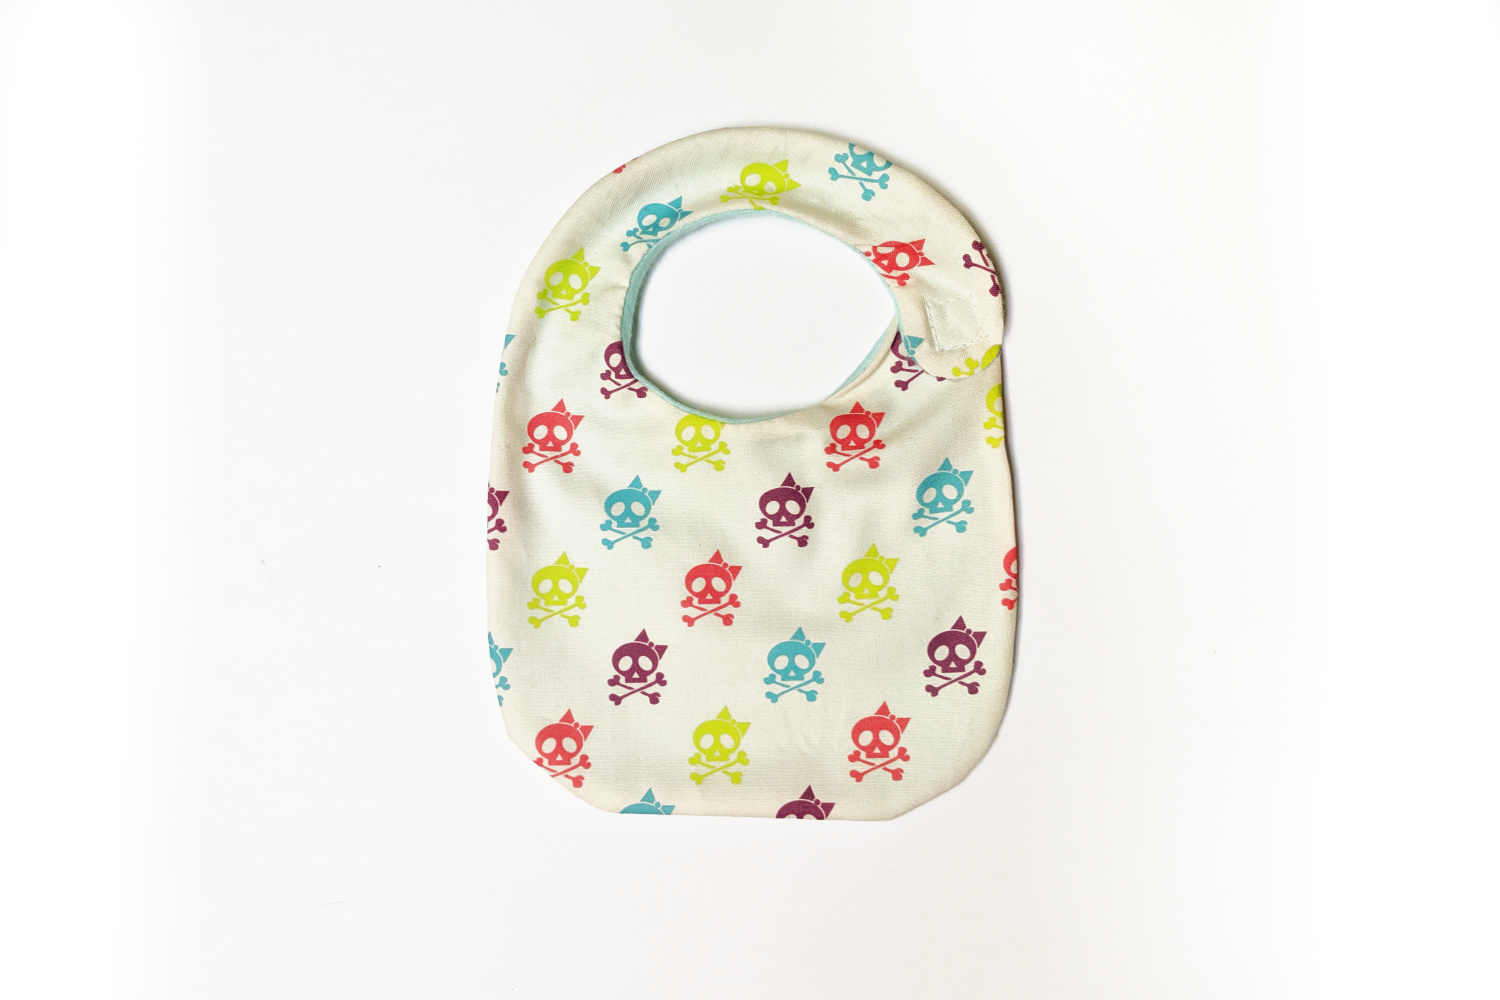 Baby Bib Ith Applique Embroidery By Designed By Geeks